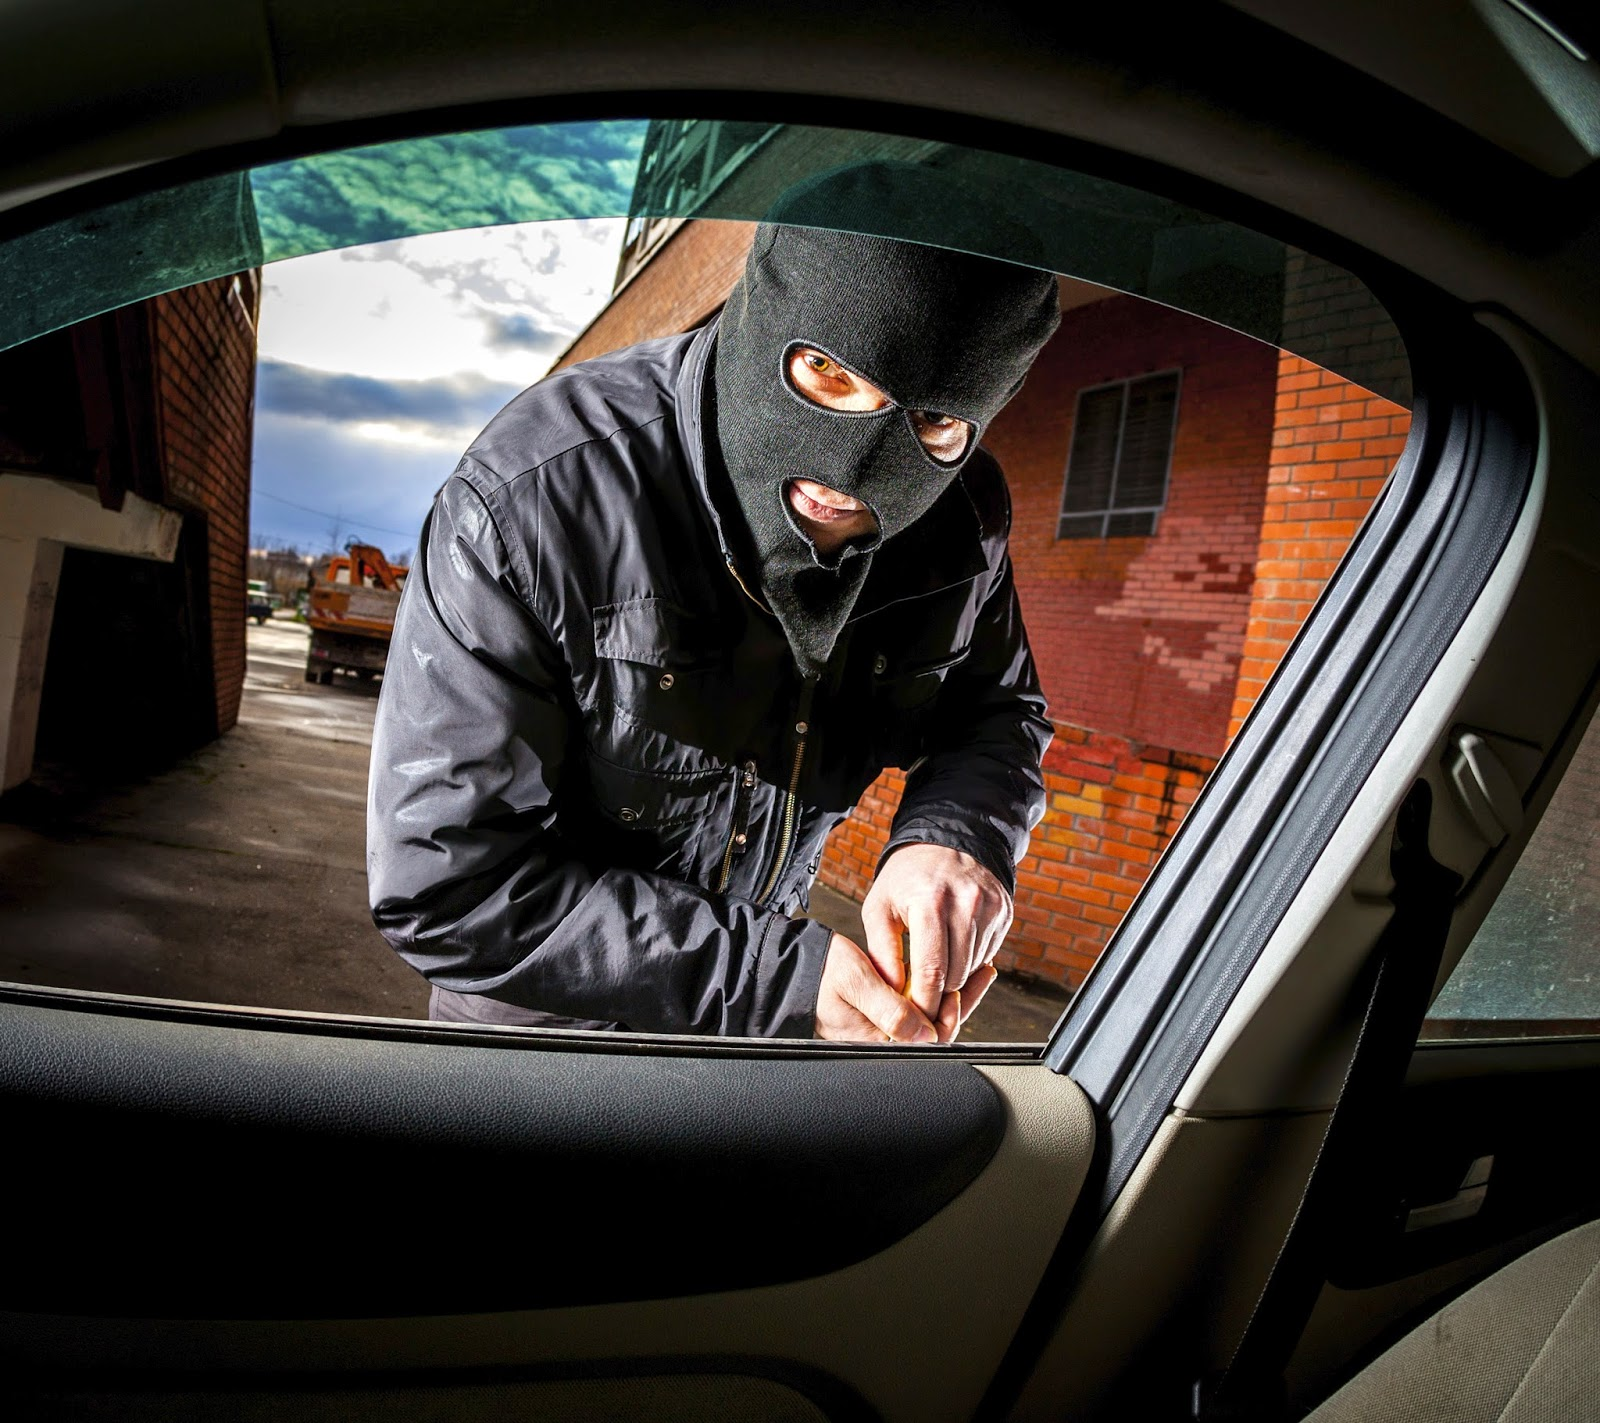 A man in a mask breaking into a car